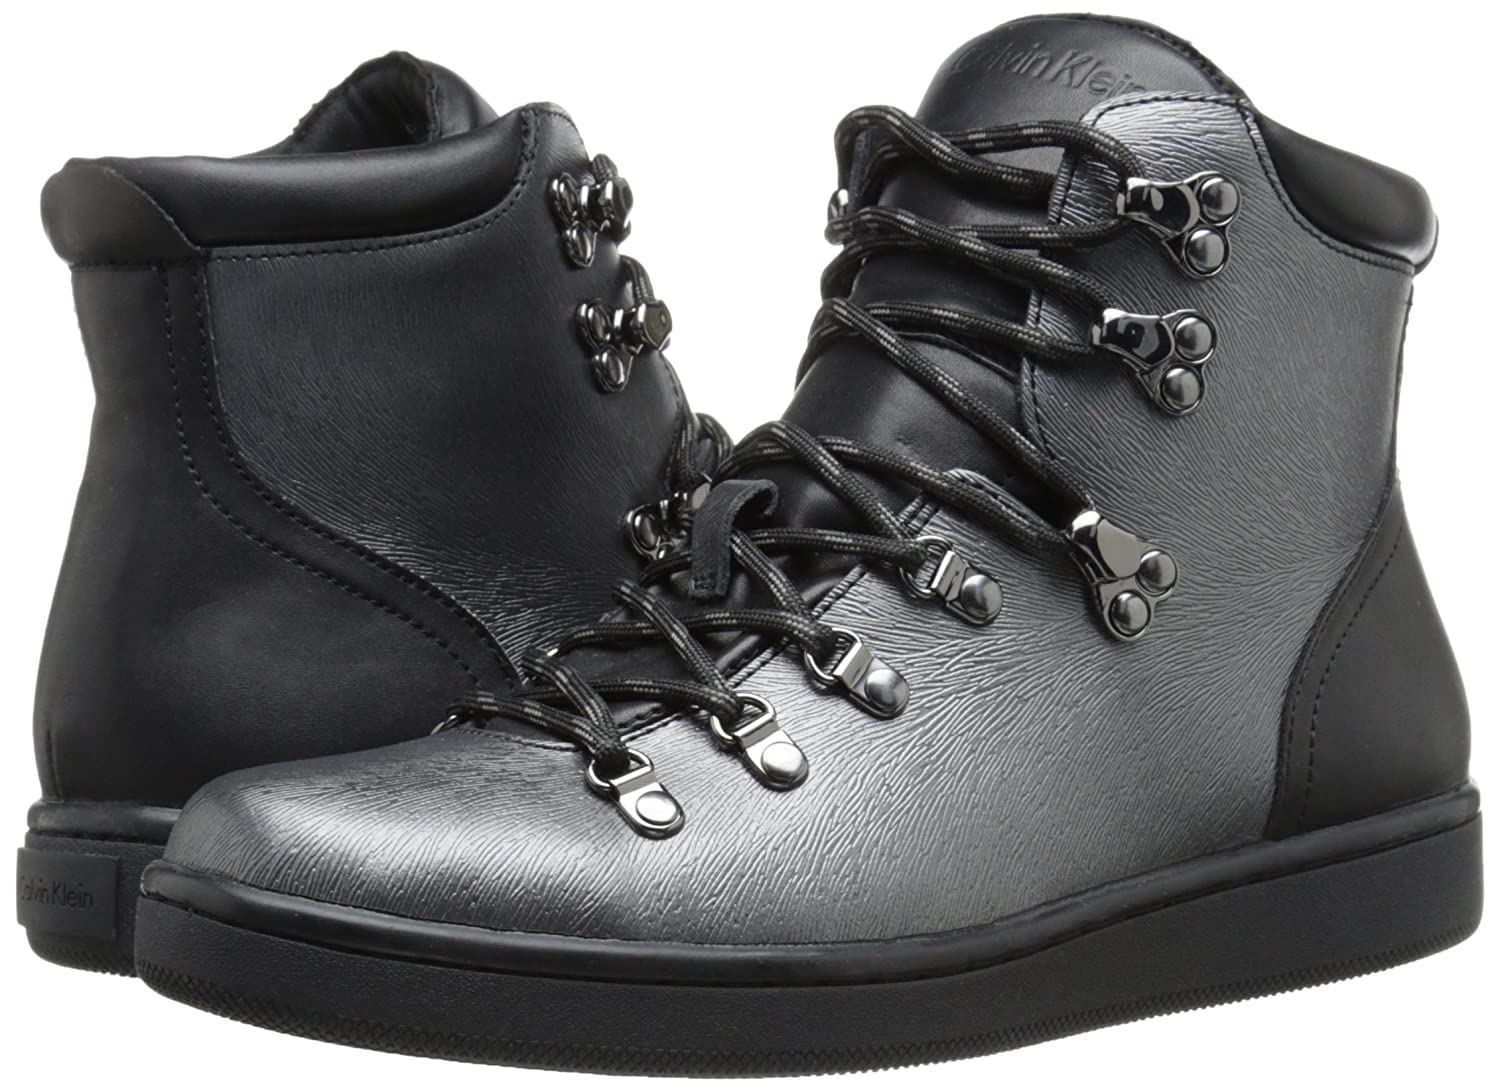 Womens Boots Calvin Klein Dita Pewter/Black Leather